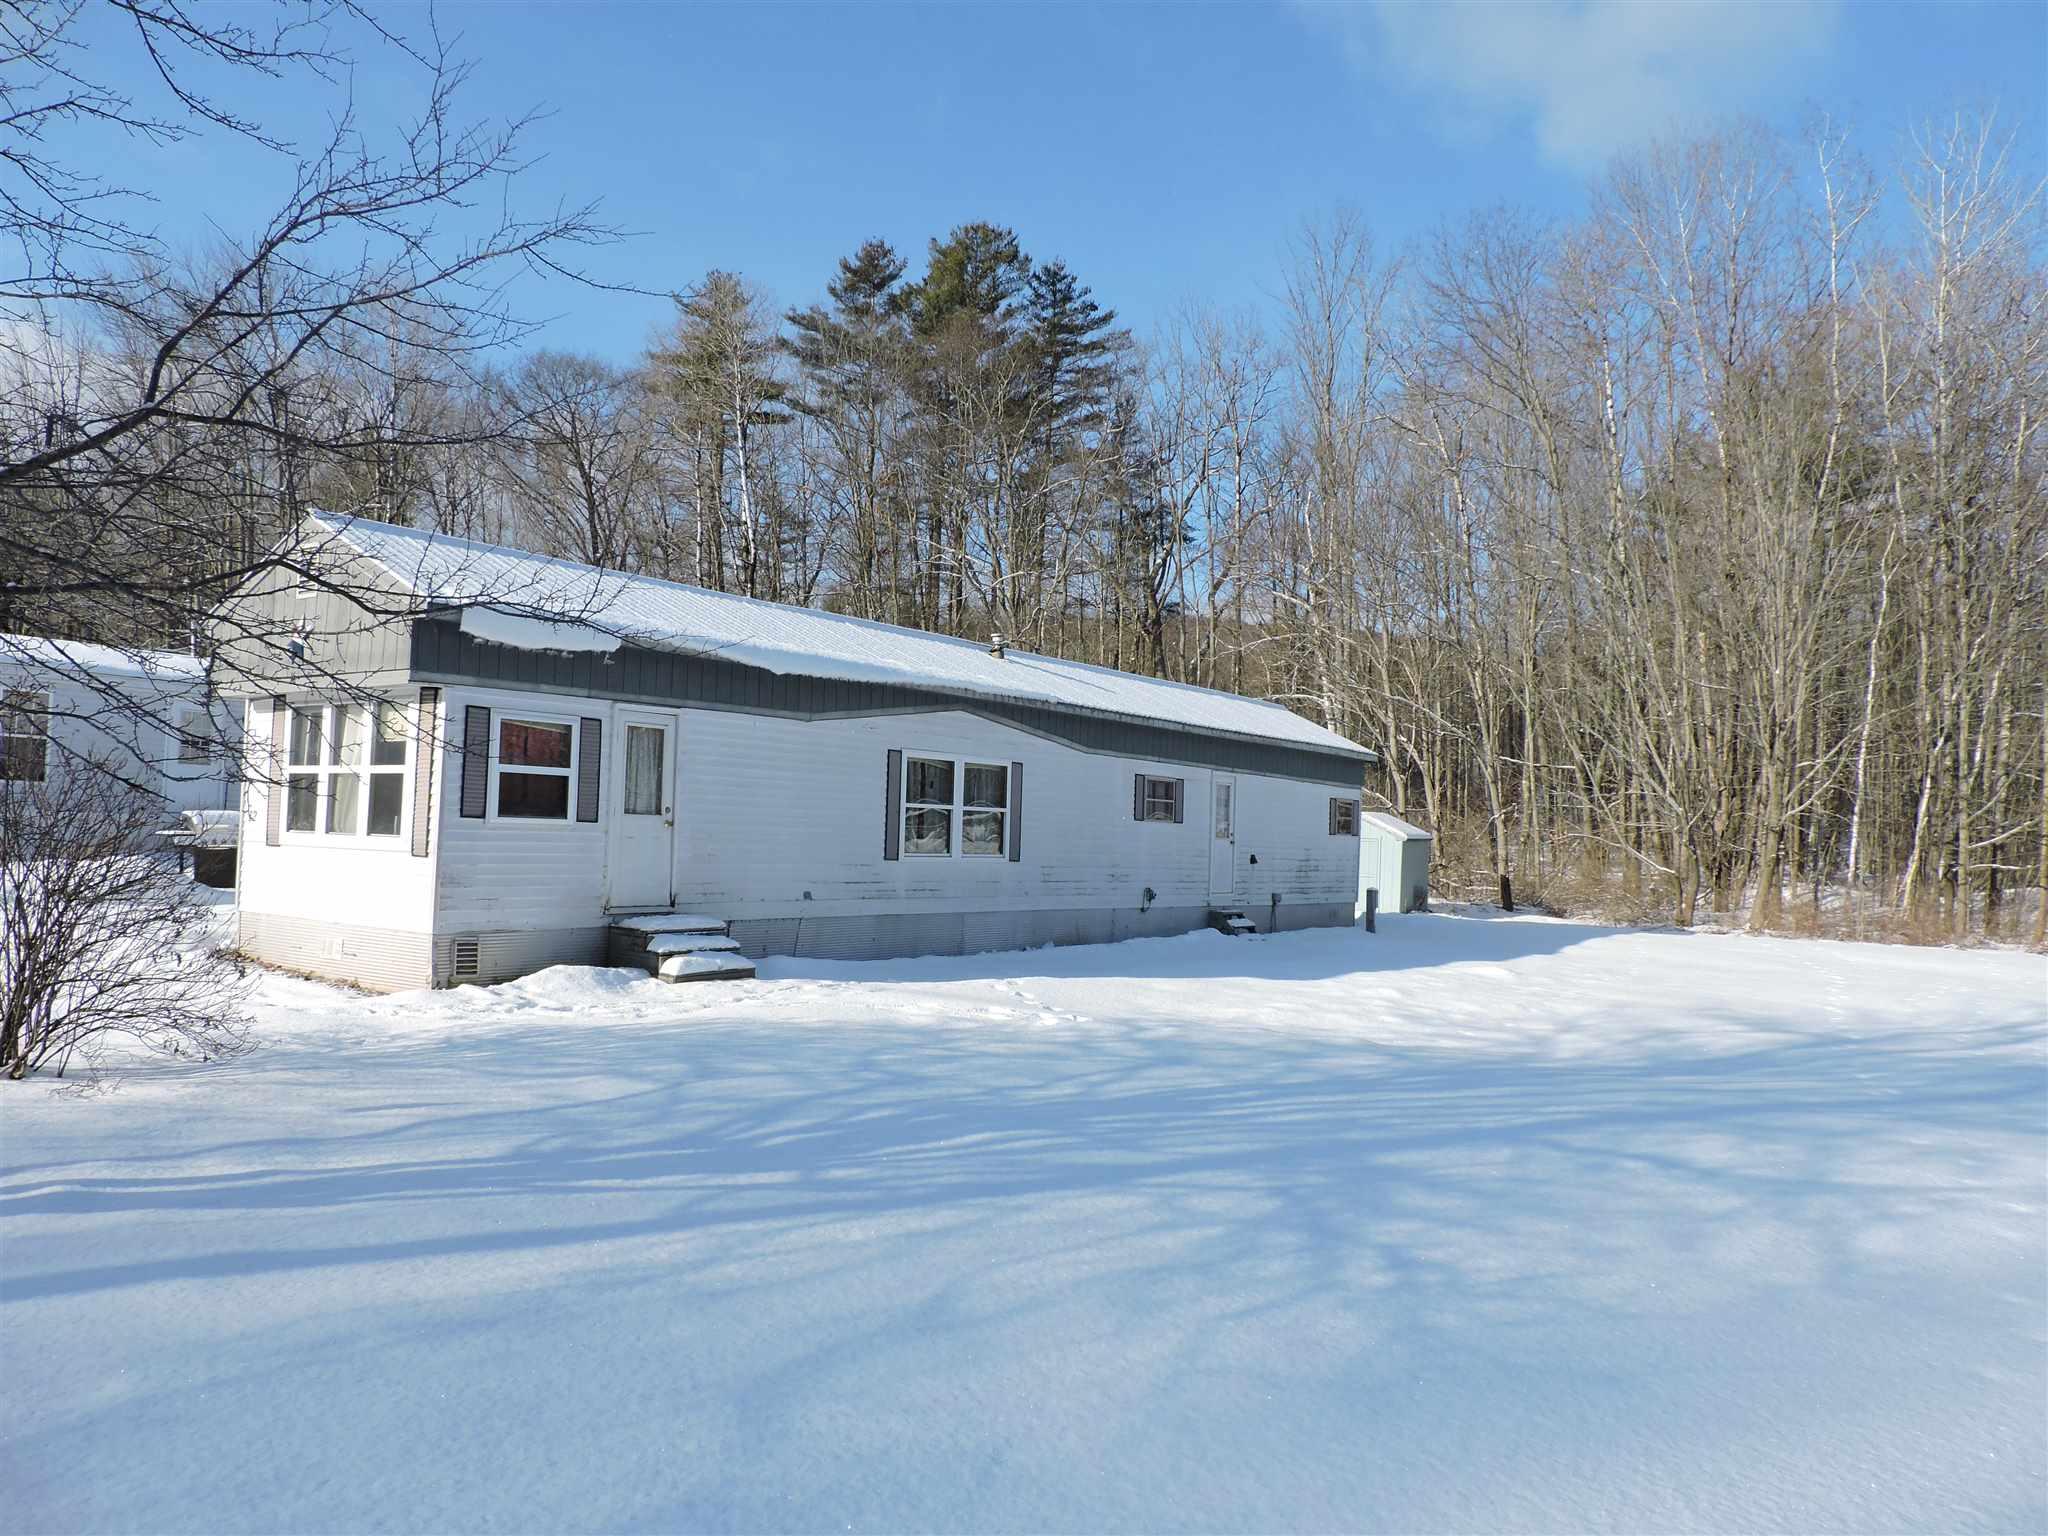 ENFIELD NH Homes for sale